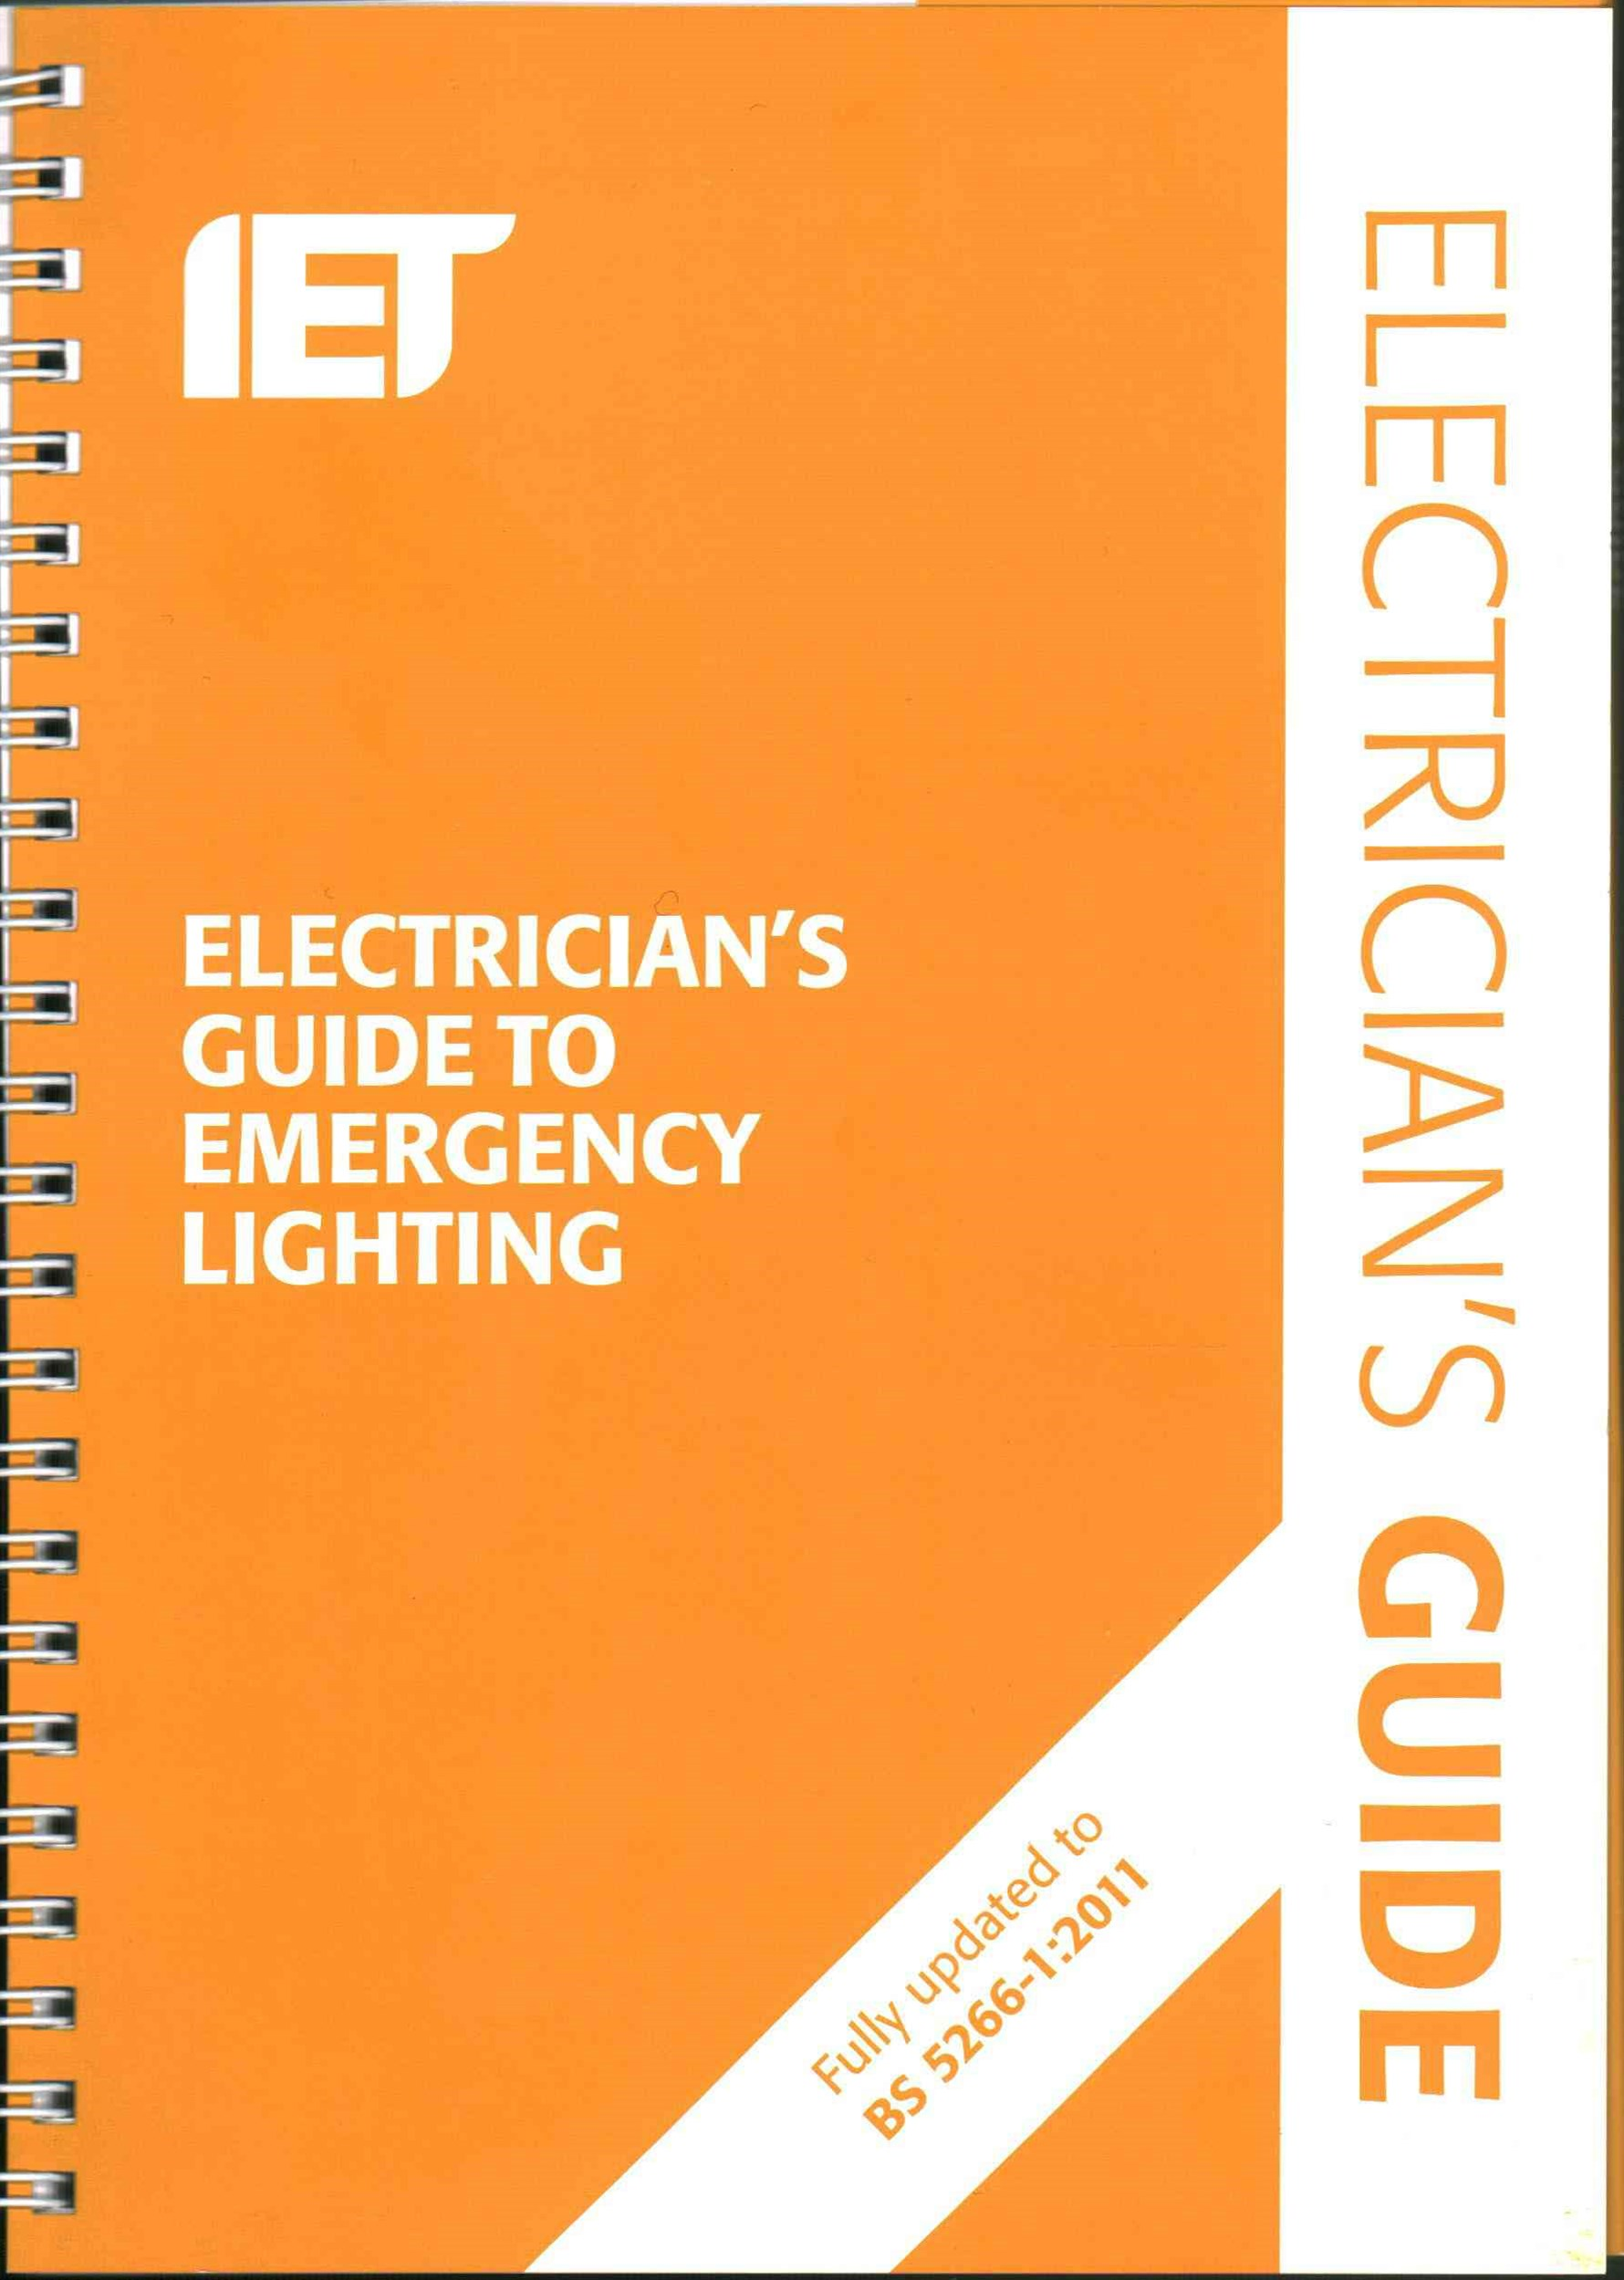 The Electrician's Guide to Emergency Lighting